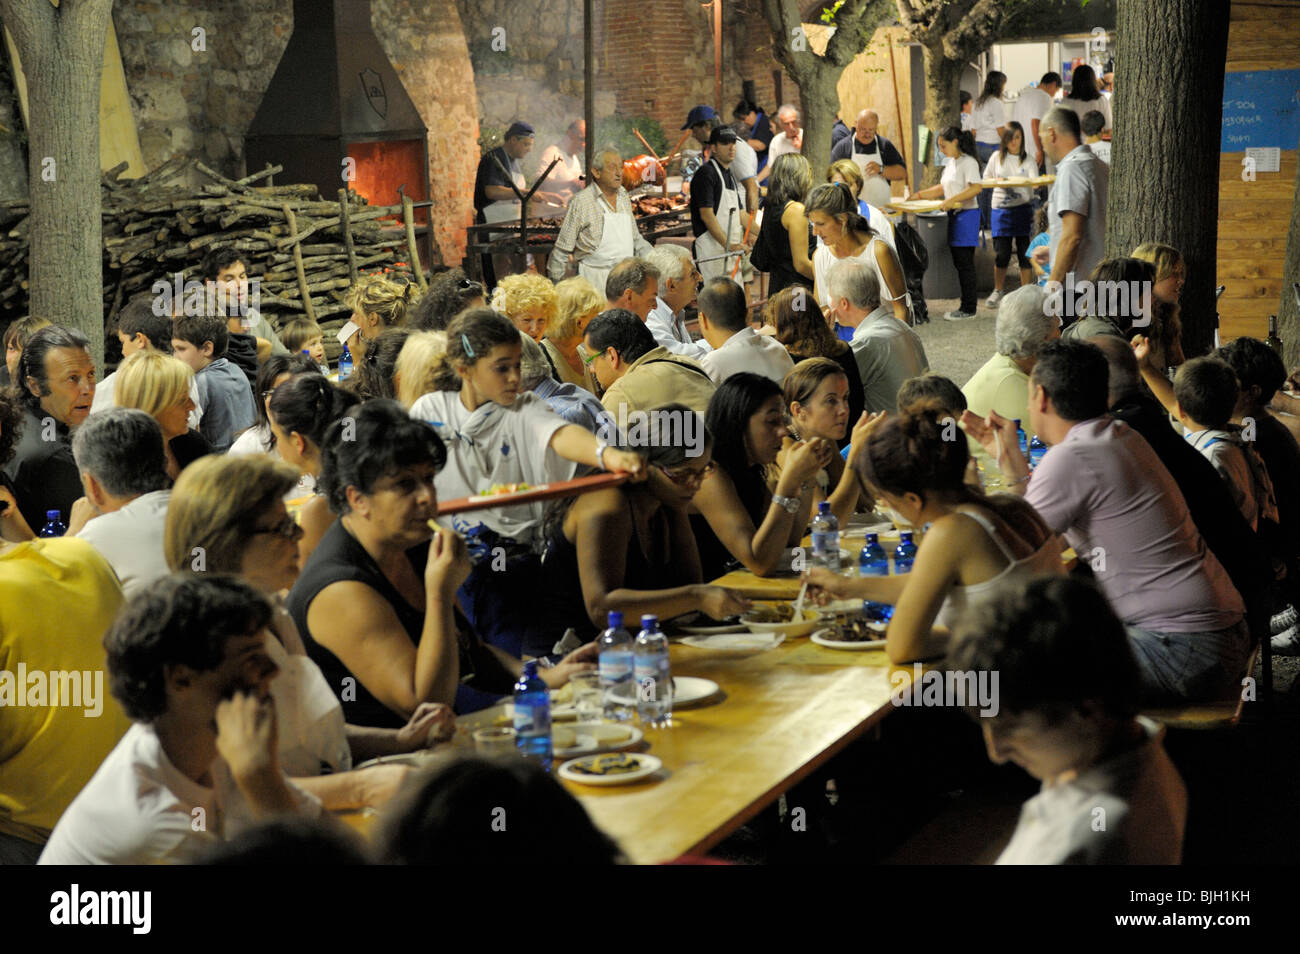 Montepulciano, Tuscany, Italy. Contrada district wild boar feast during the annual wine festival known as the Bravio Stock Photo